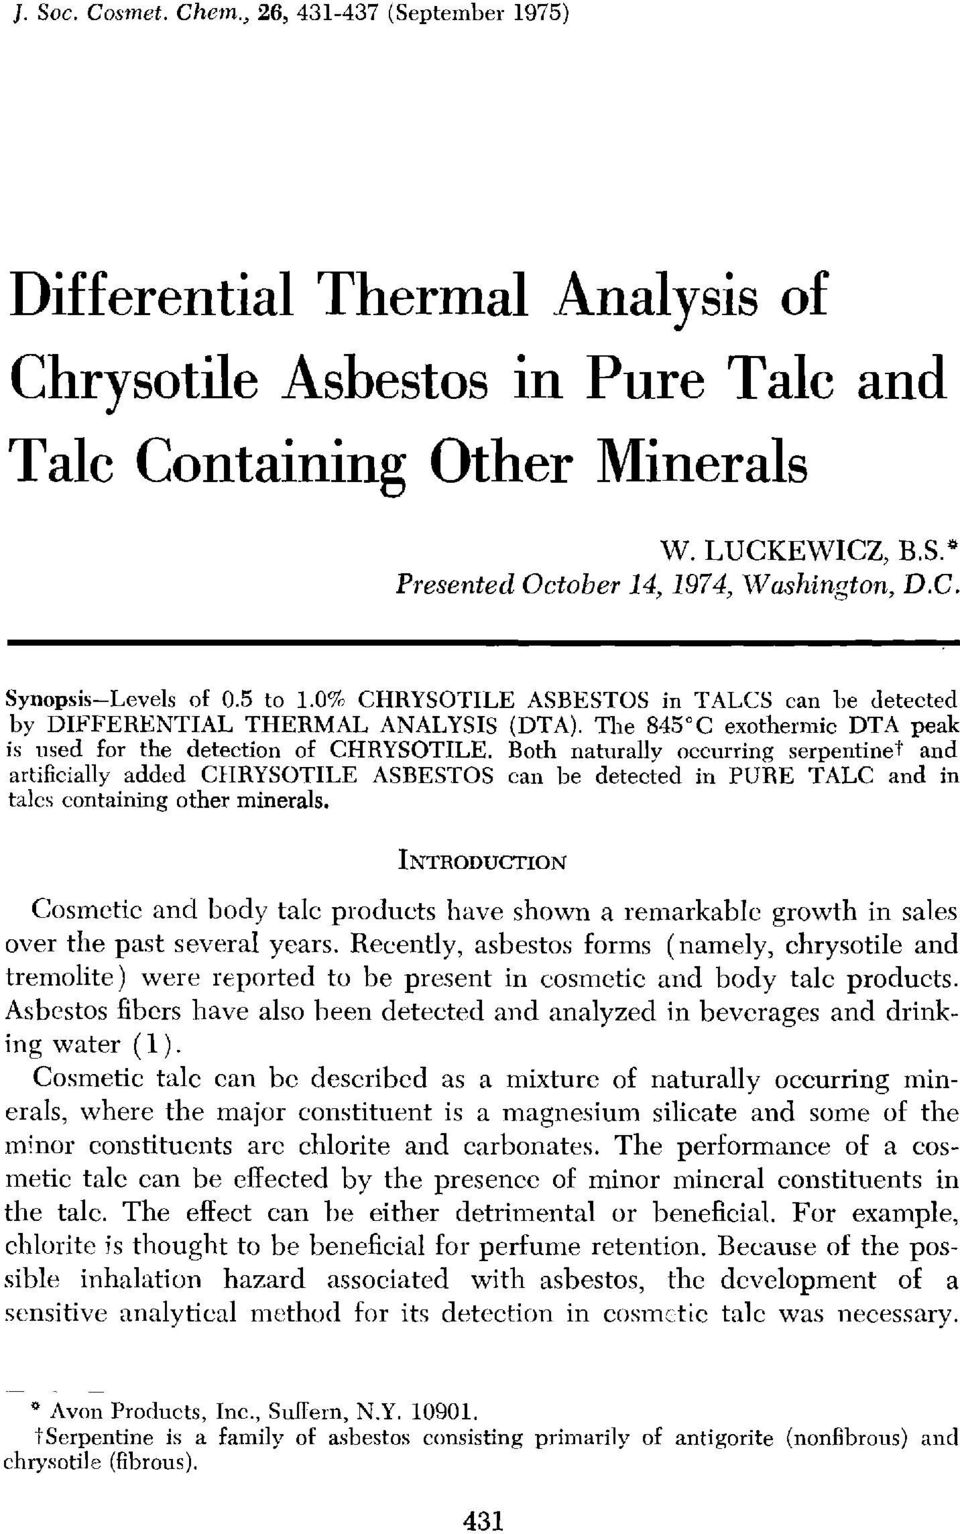 Both naturally occurring serpentinet and artificially added CHRYSOTILE ASBESTOS can be detected in PURE TALC and in talcs containing other minerals.